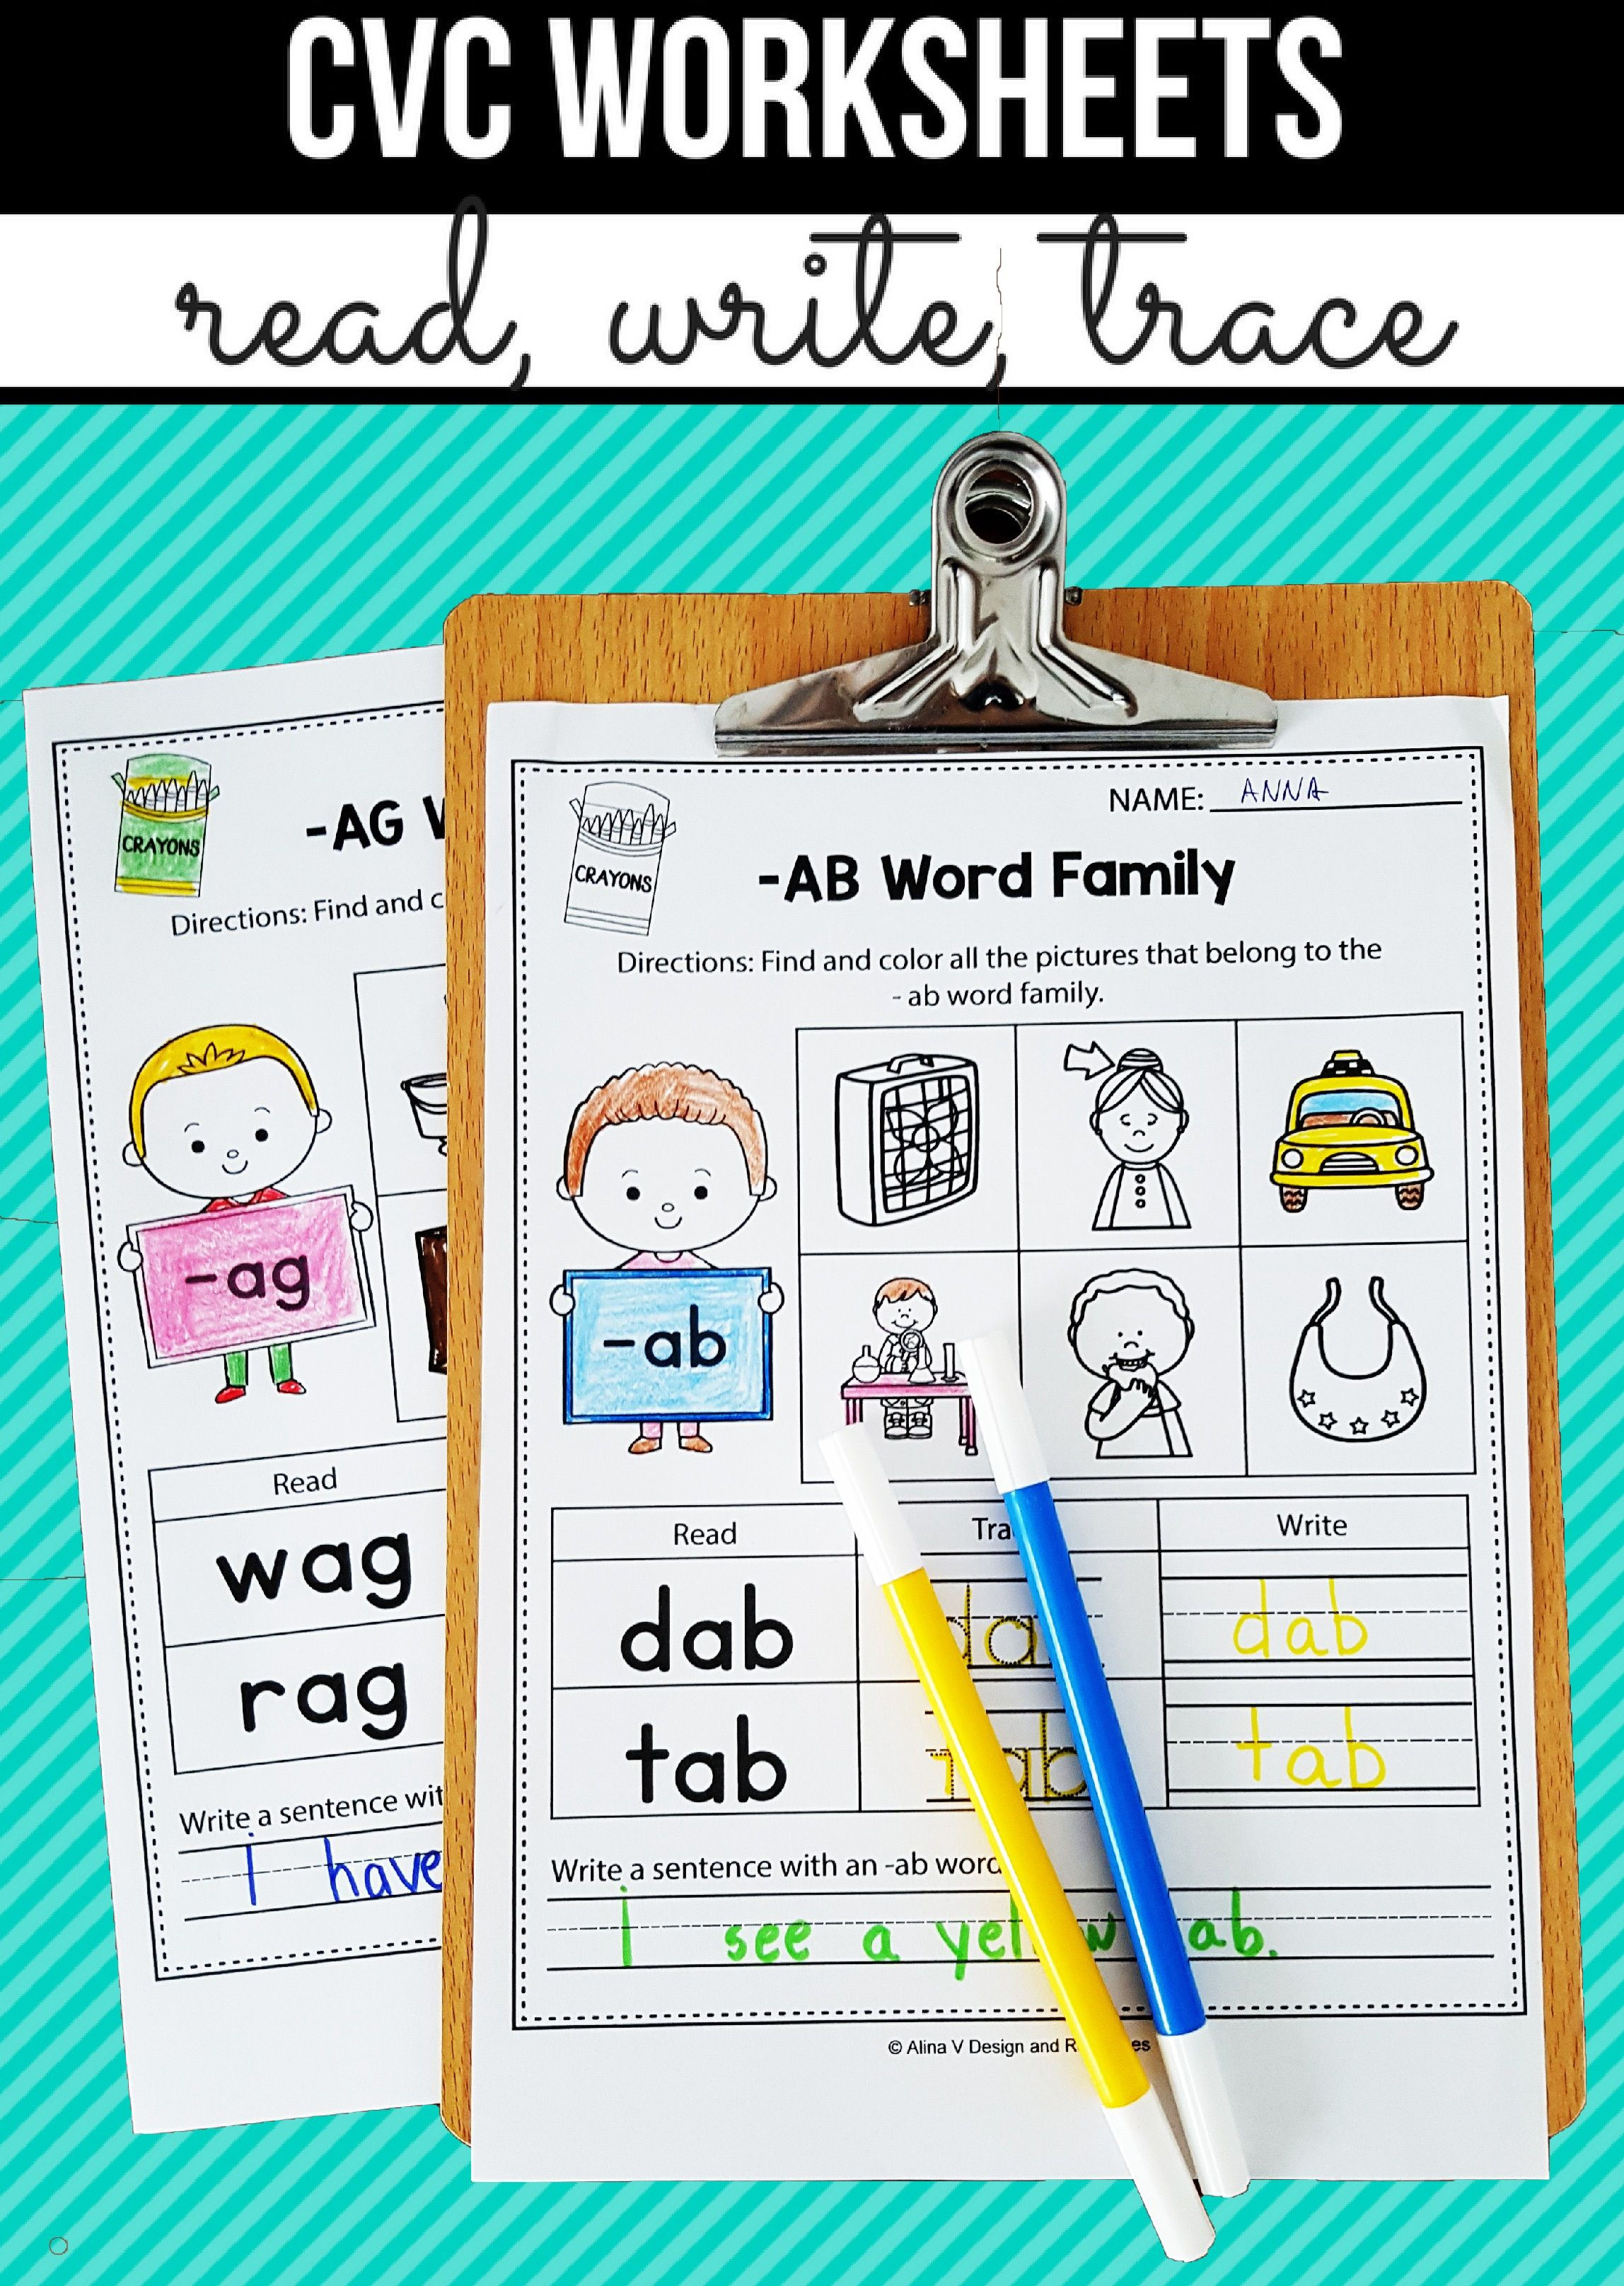 hight resolution of CVC Words Worksheets All Vowels CVC Word Families Worksheets Kindergarten    Cvc words